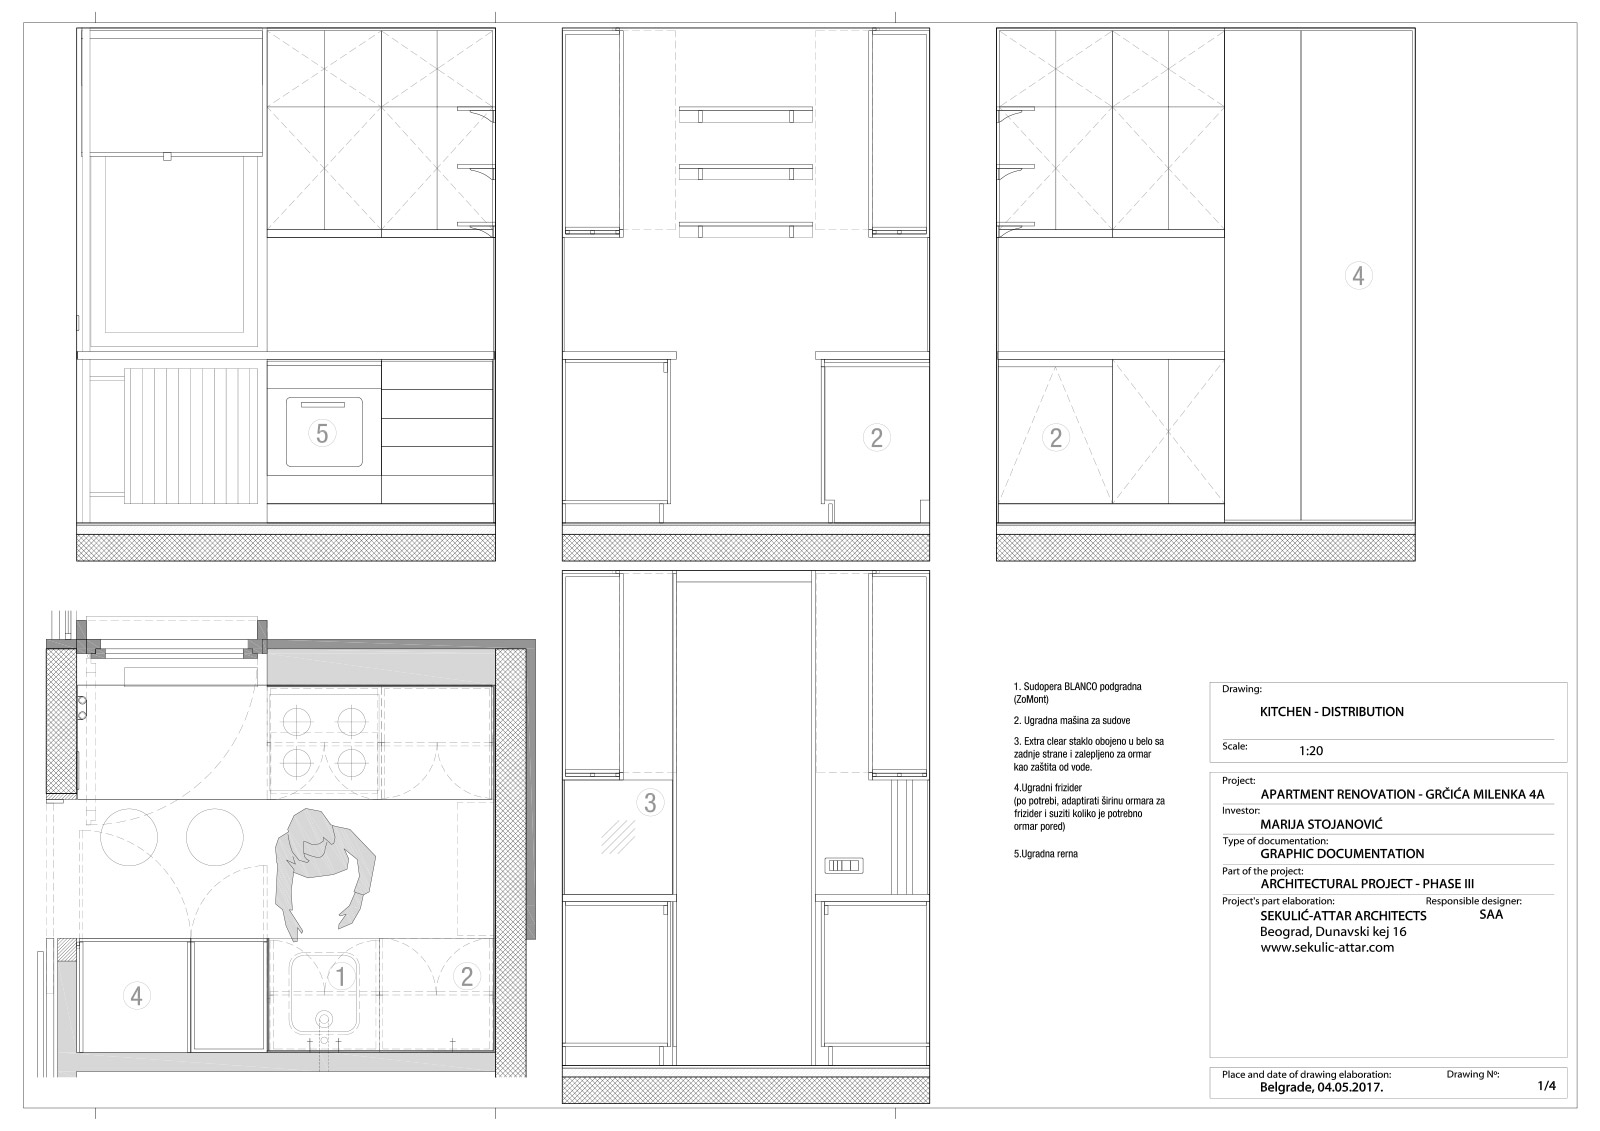 apartment in grcica milenka belgrade architectural drawings kitchen distribution